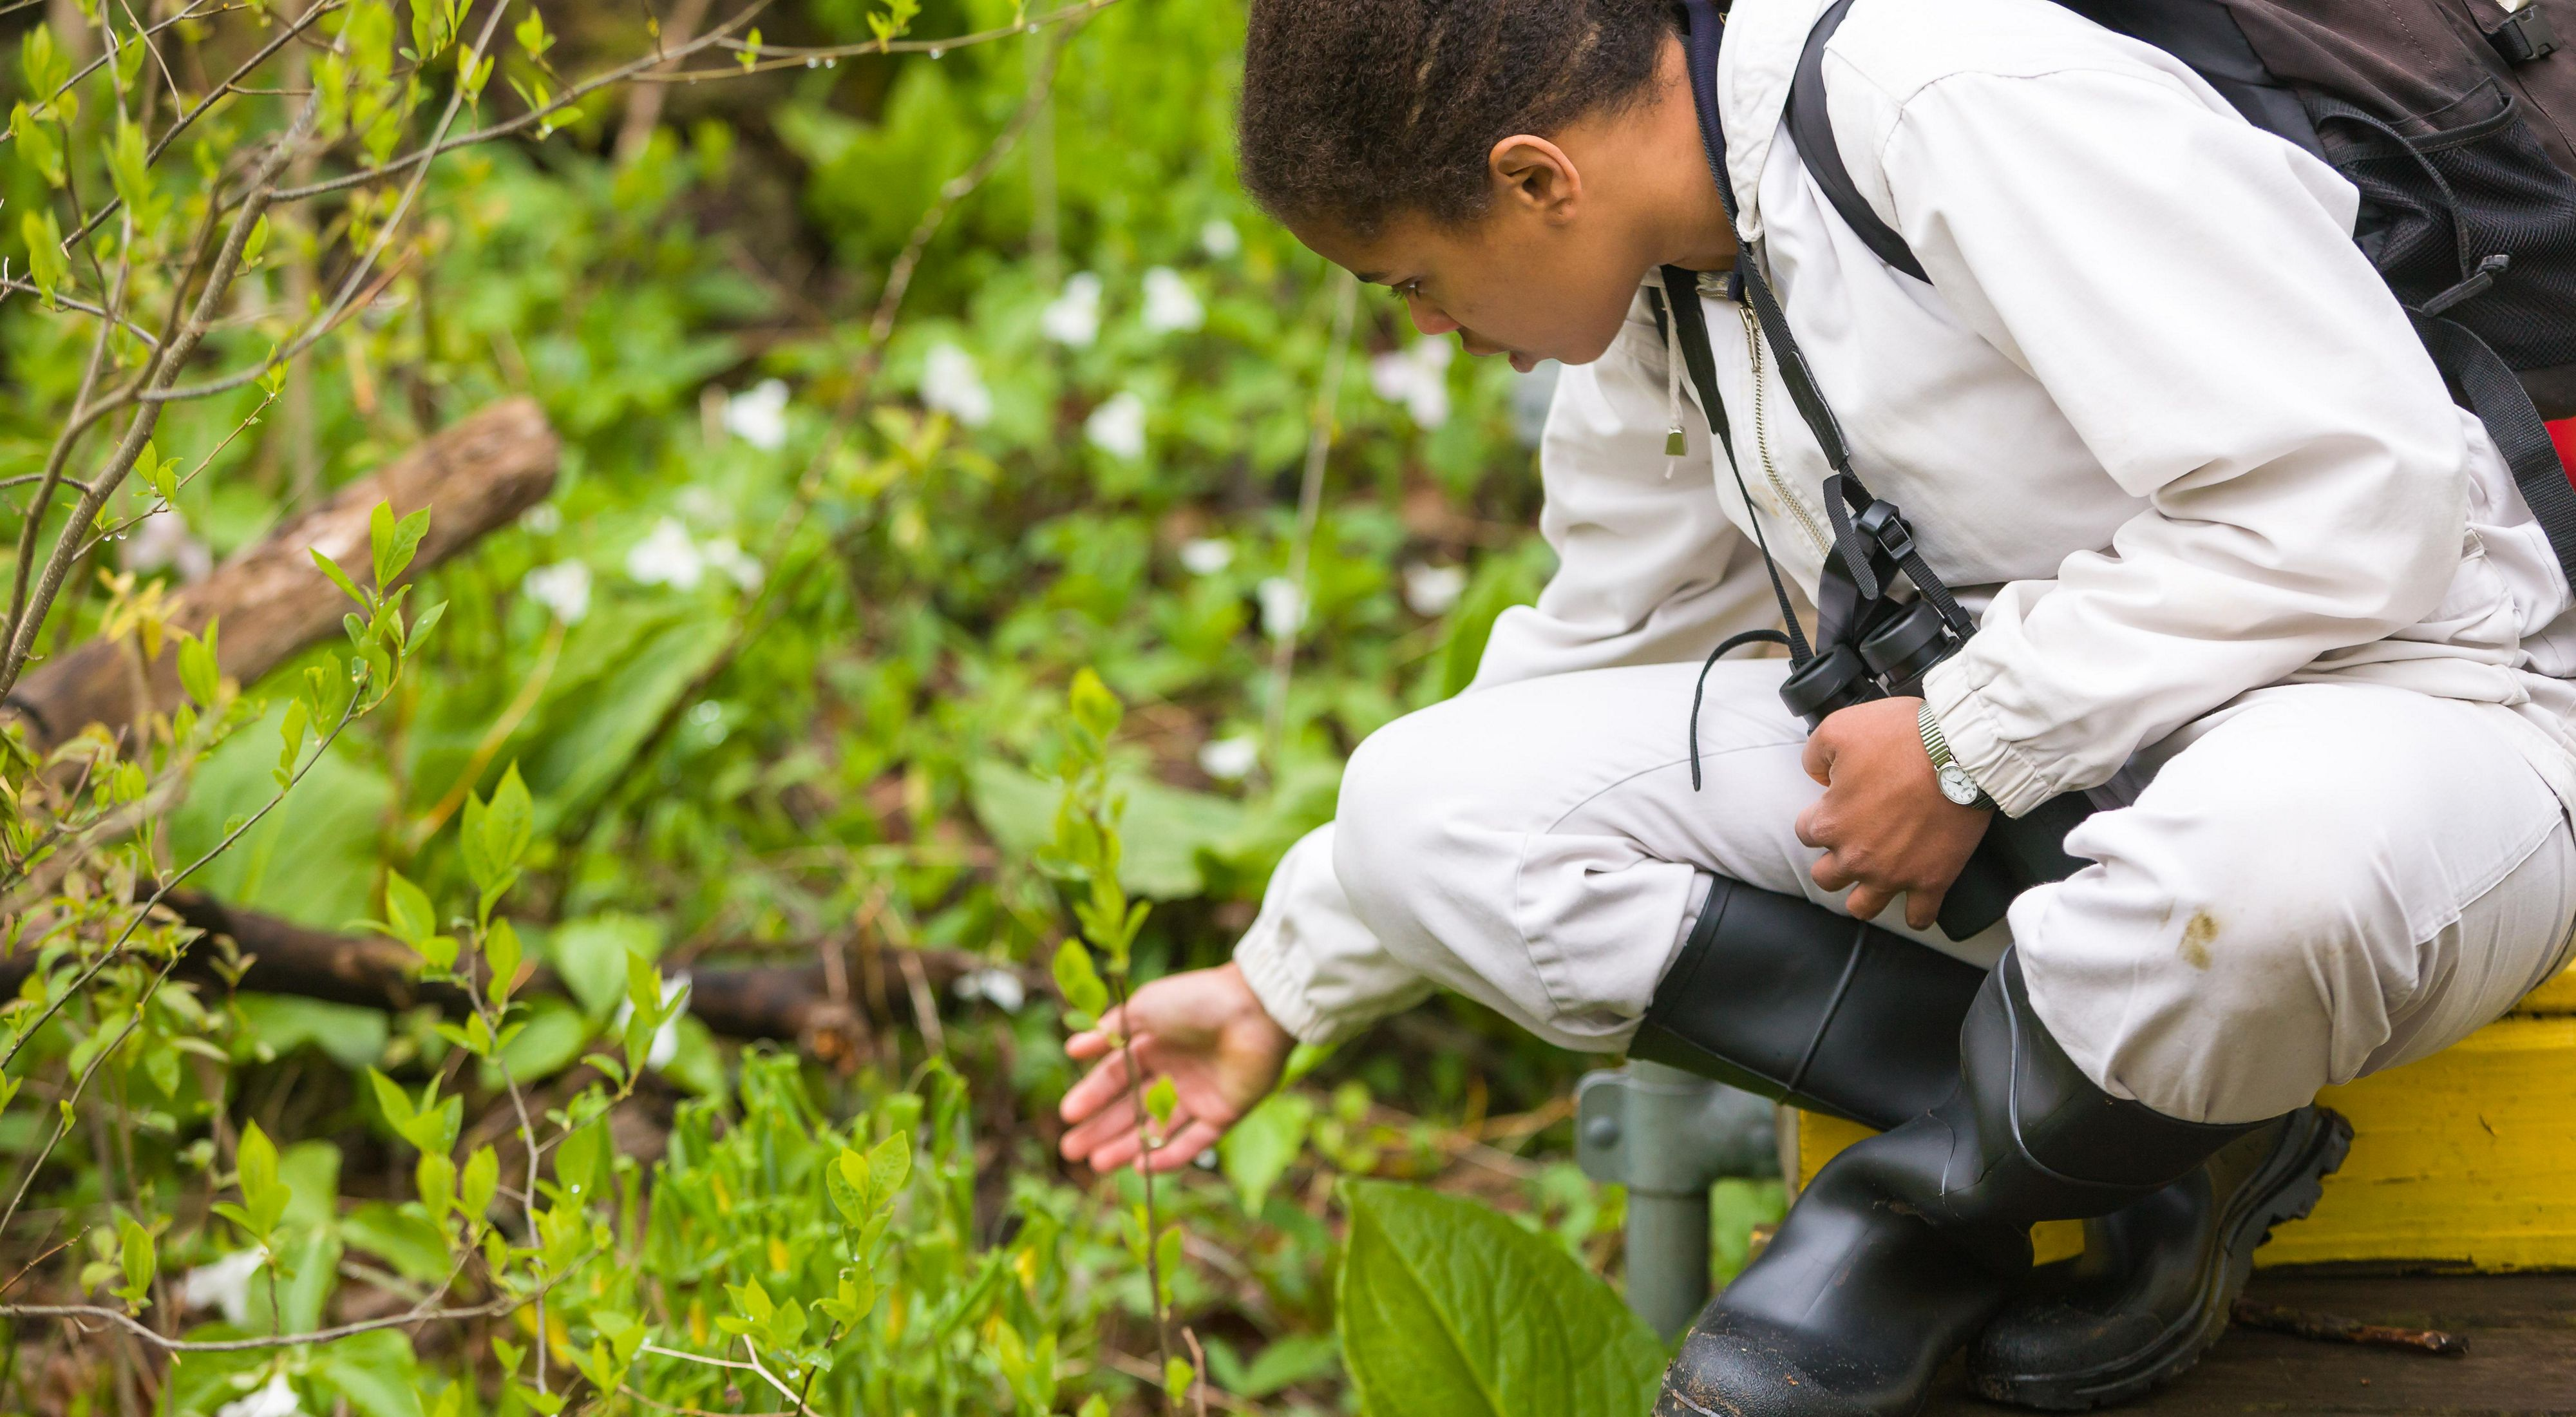 A girl wearing rubber boots and carrying binoculars bends over to look closely at a plant.